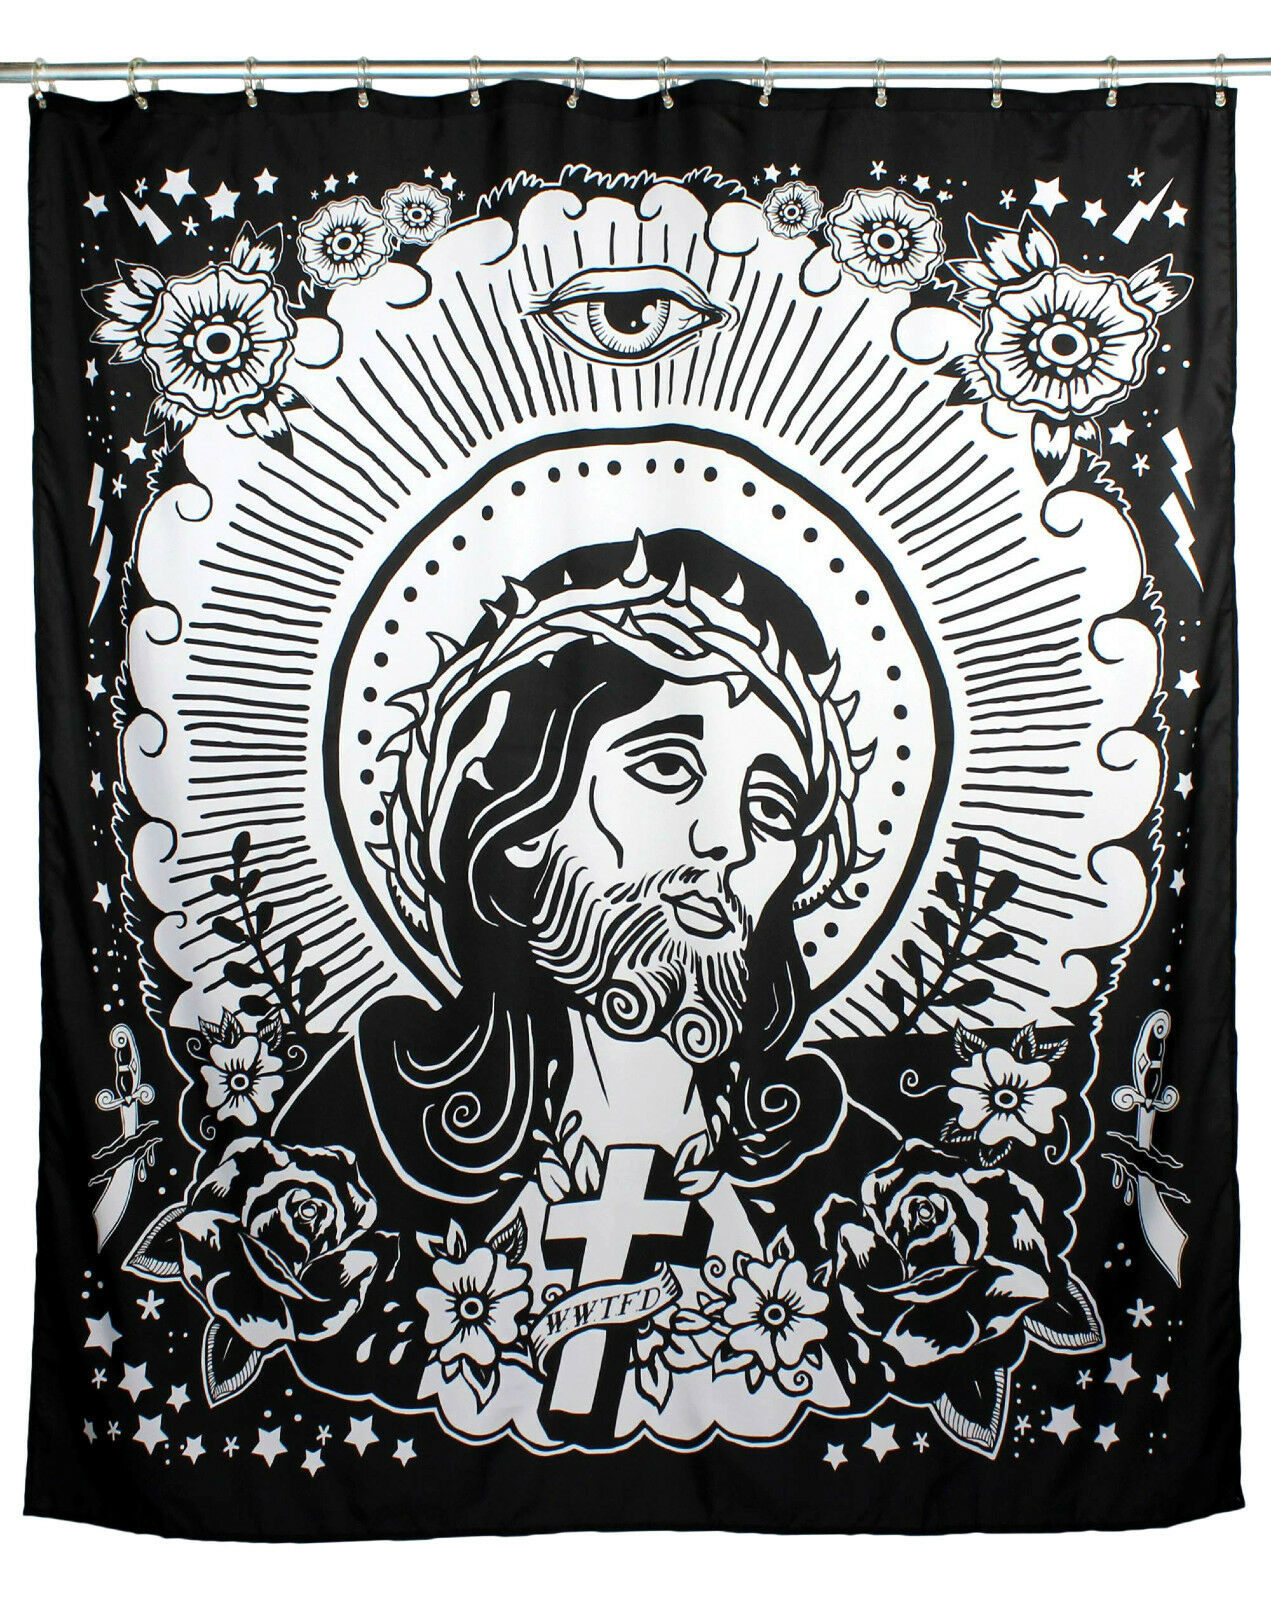 TOO FAST JESUS BATHROOM GOTHIC PUNK SPIRITUAL TATTOO SHOWER CULT CURTAIN BATH 1